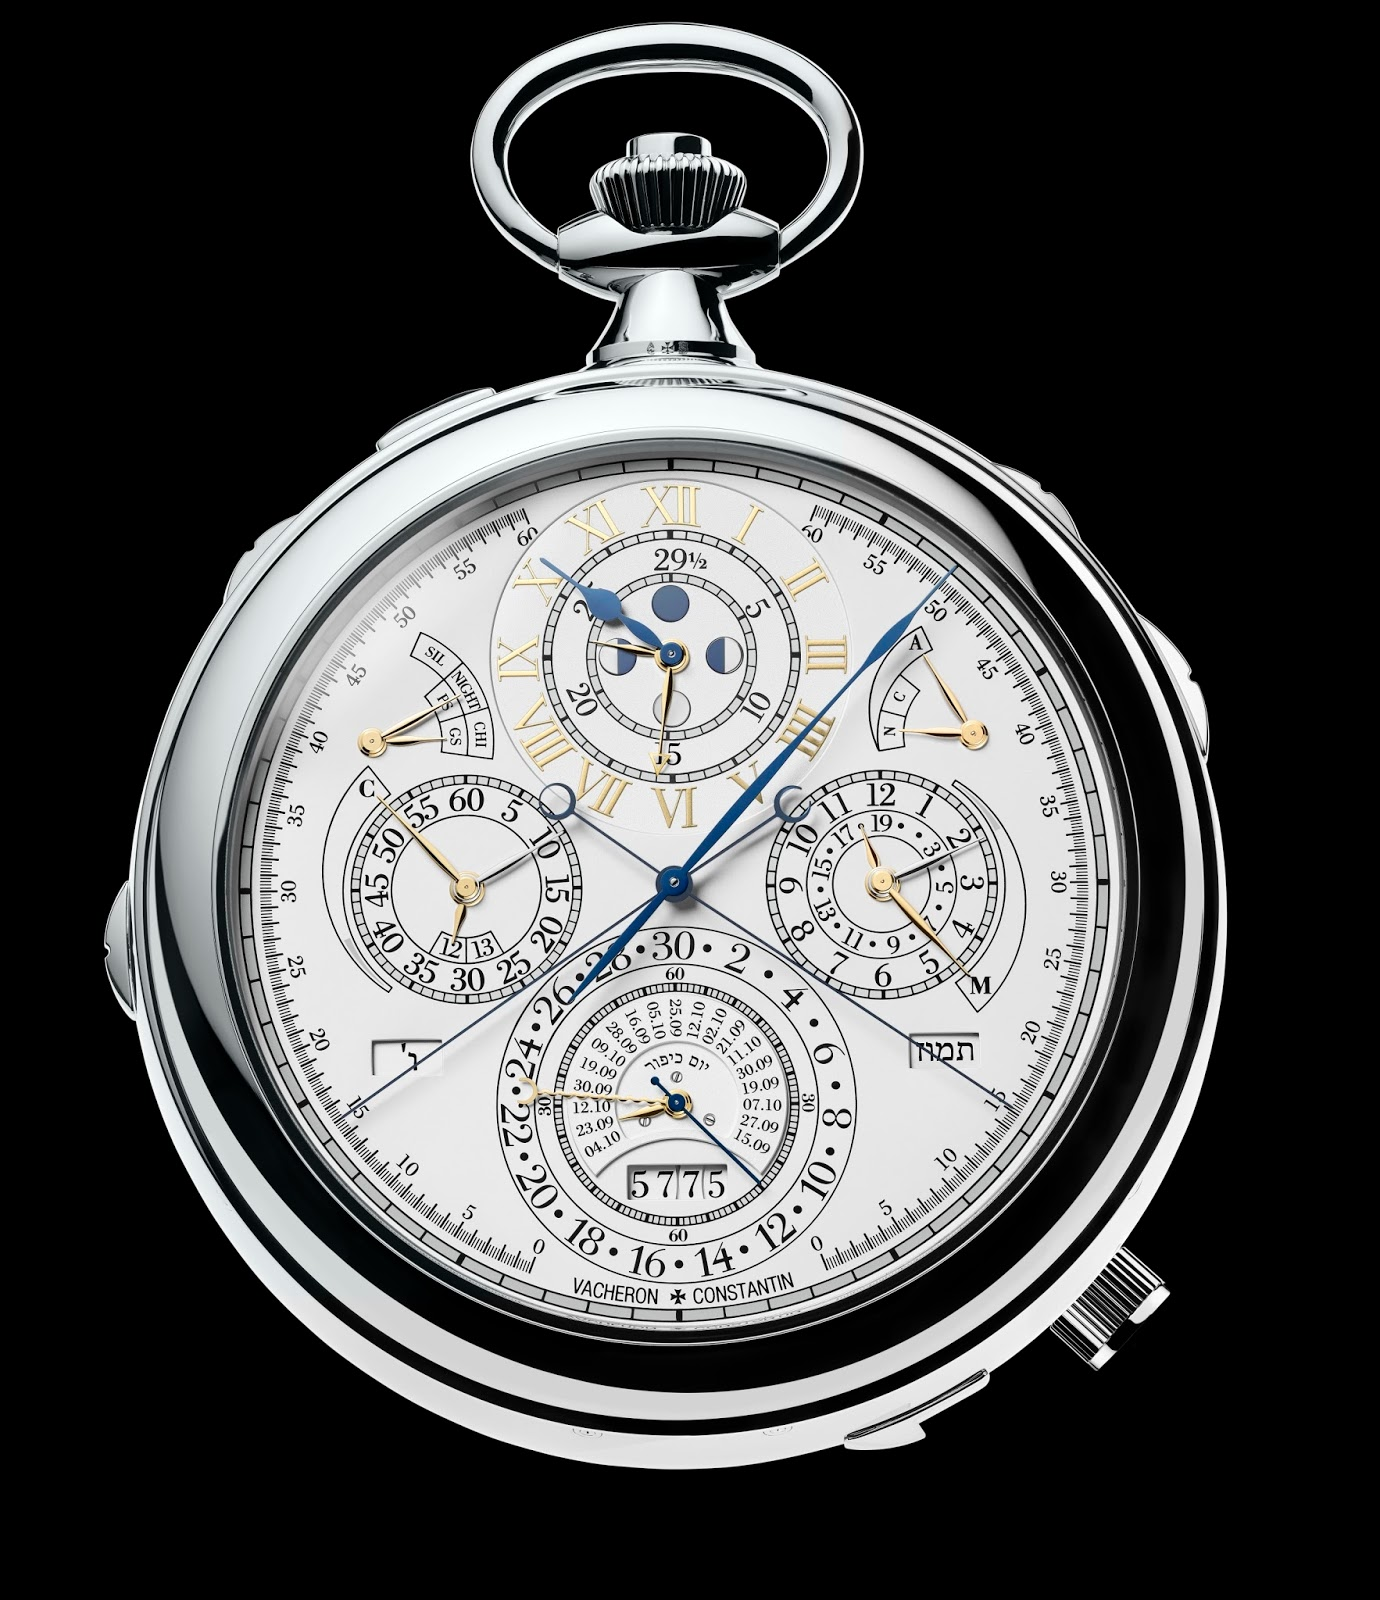 Vacheron Constantin - Reference 57260 watch